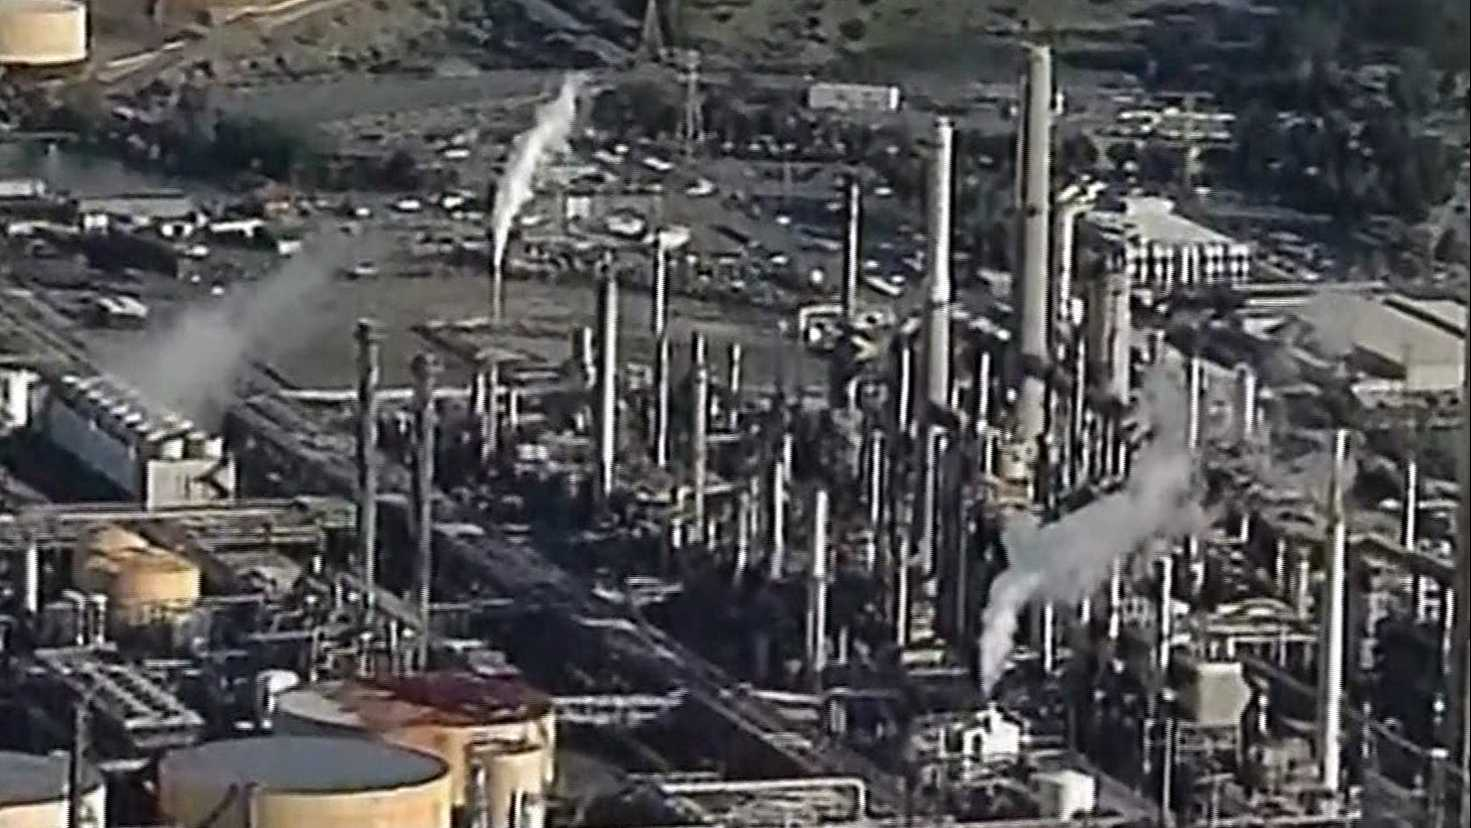 The Shell oil refinery in Martinez, California, was flaring after a power outage on Monday, Dec. 19, 2016.